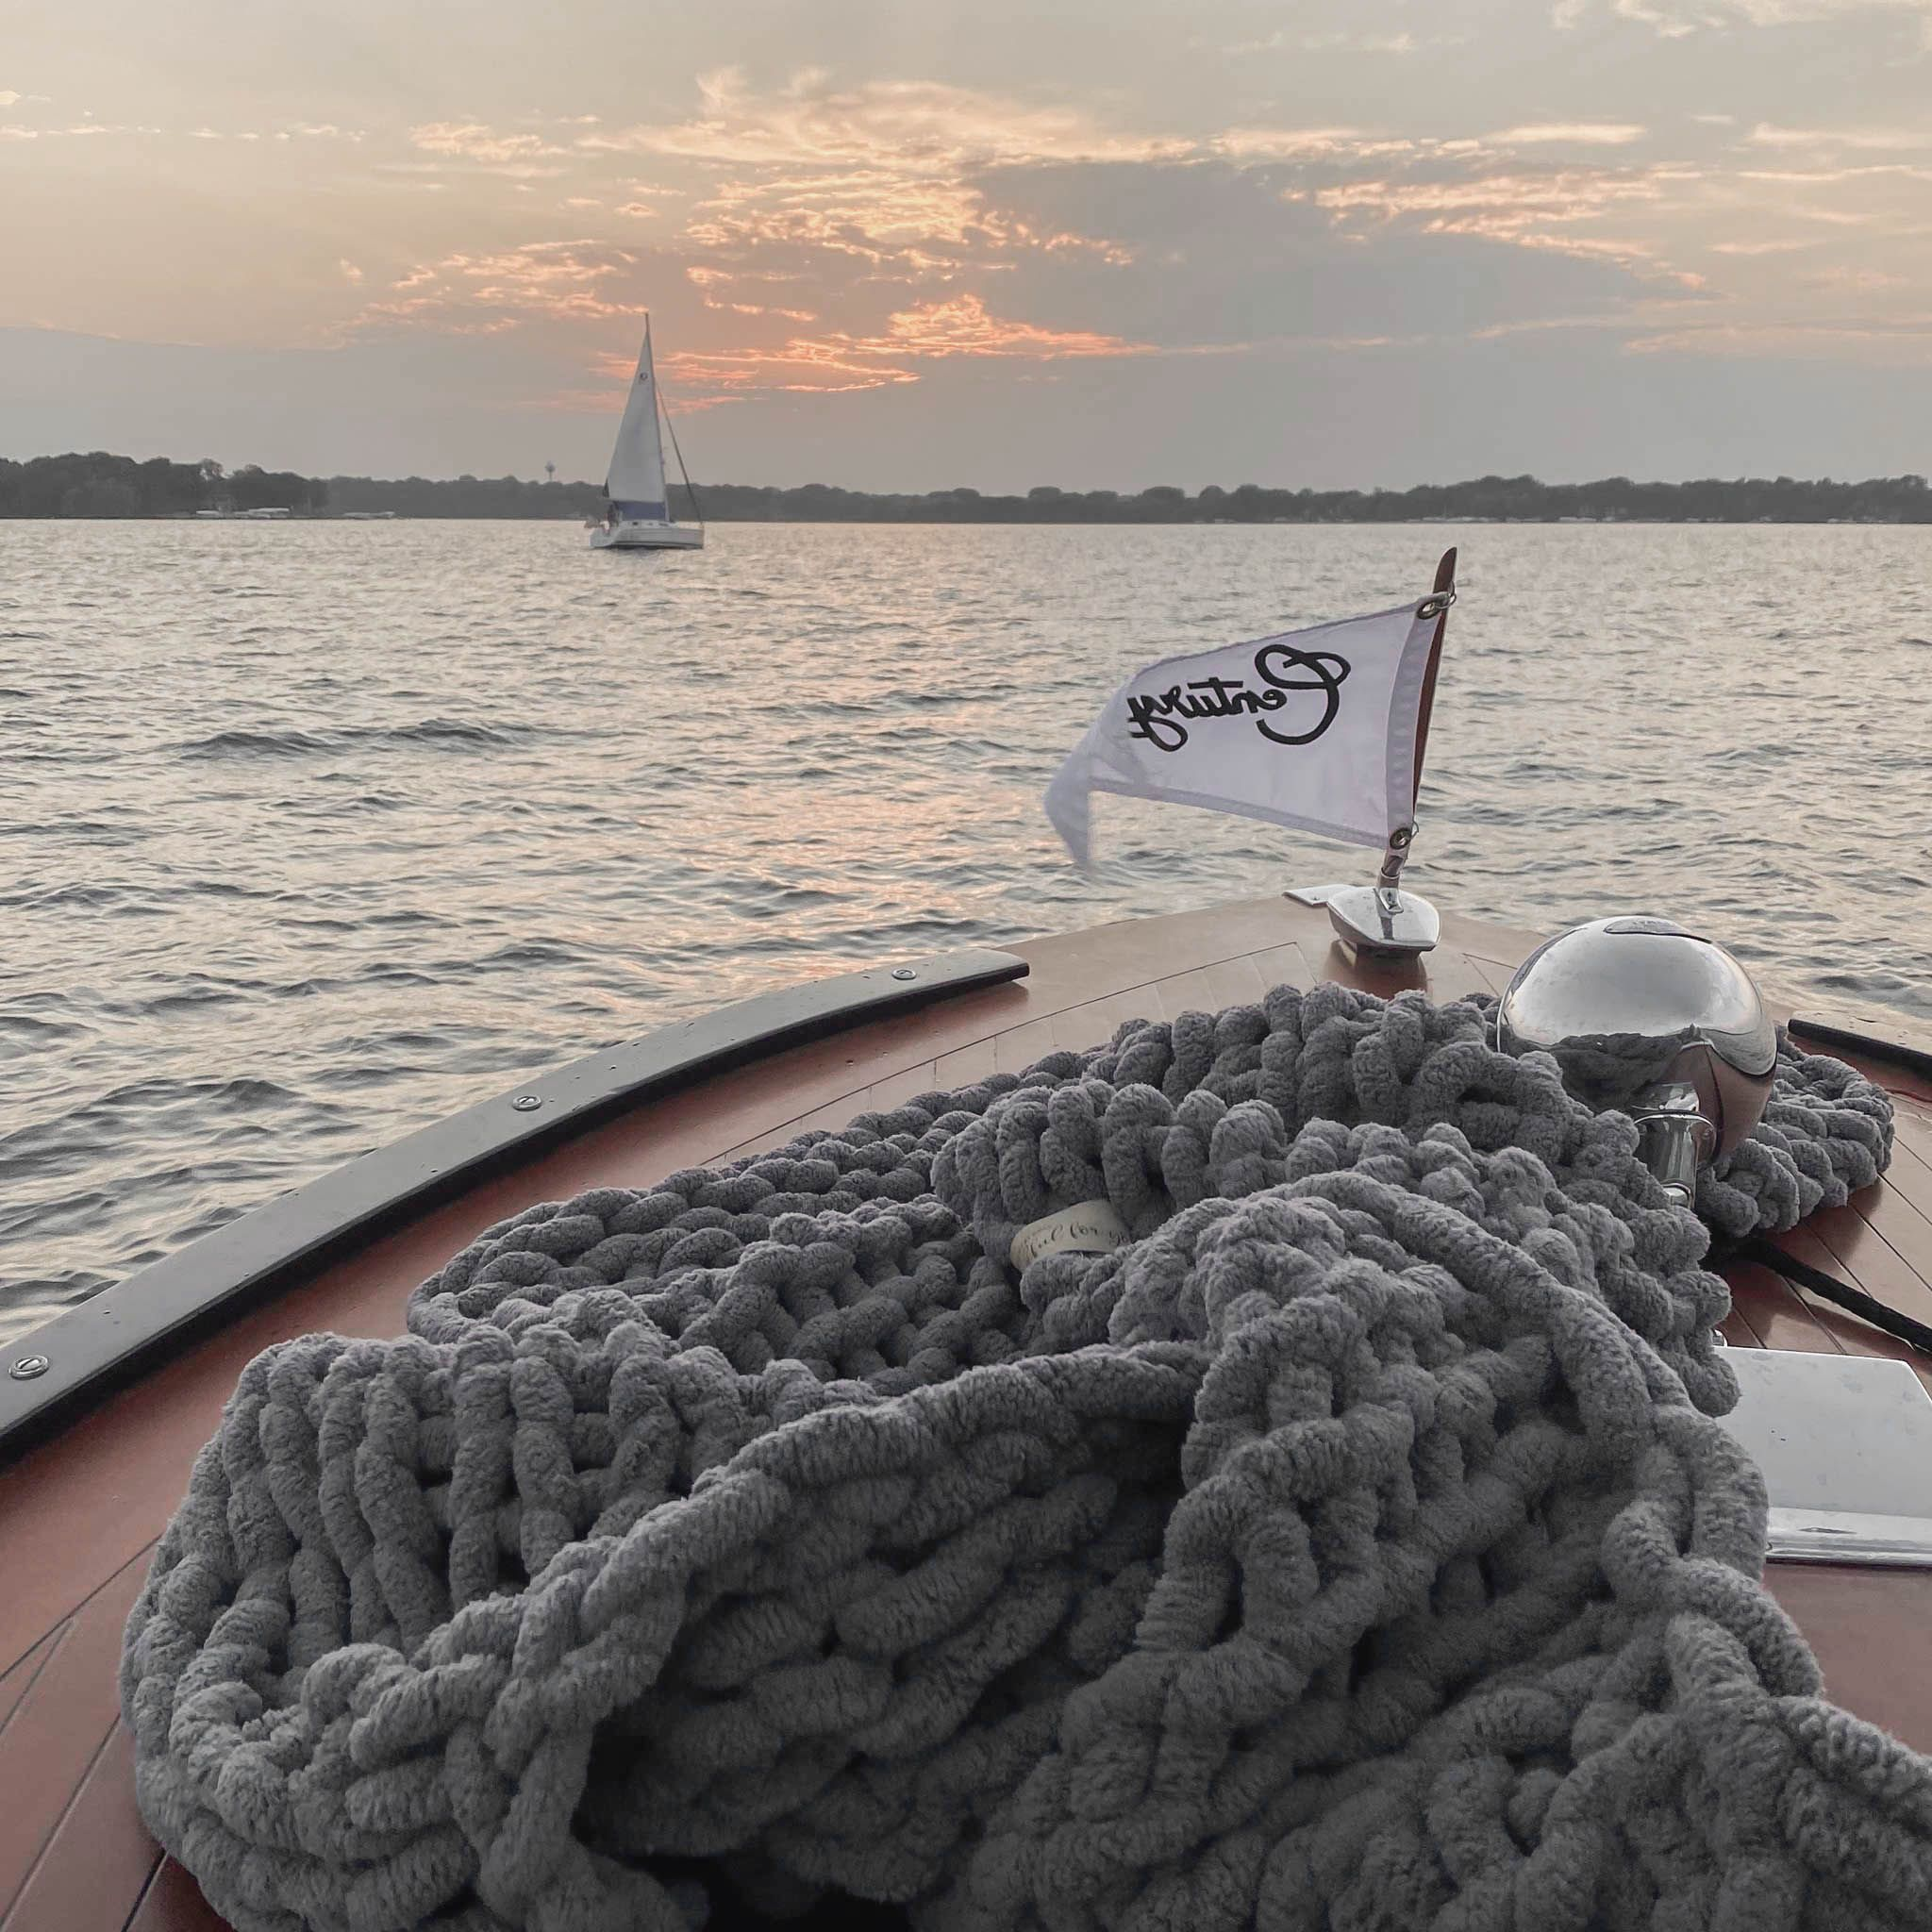 As summer sails into the sunset ~ . . . #biglovie  #blankets #love #spreadthelove #wrapupinlove #happy #life #positivevibes #givelove #inspiration #endofsummer #lakelife #okoboji #boating #woodenboats #chunkyknitblanket #infinitelove #cozy #bestgifts #weekend #relax